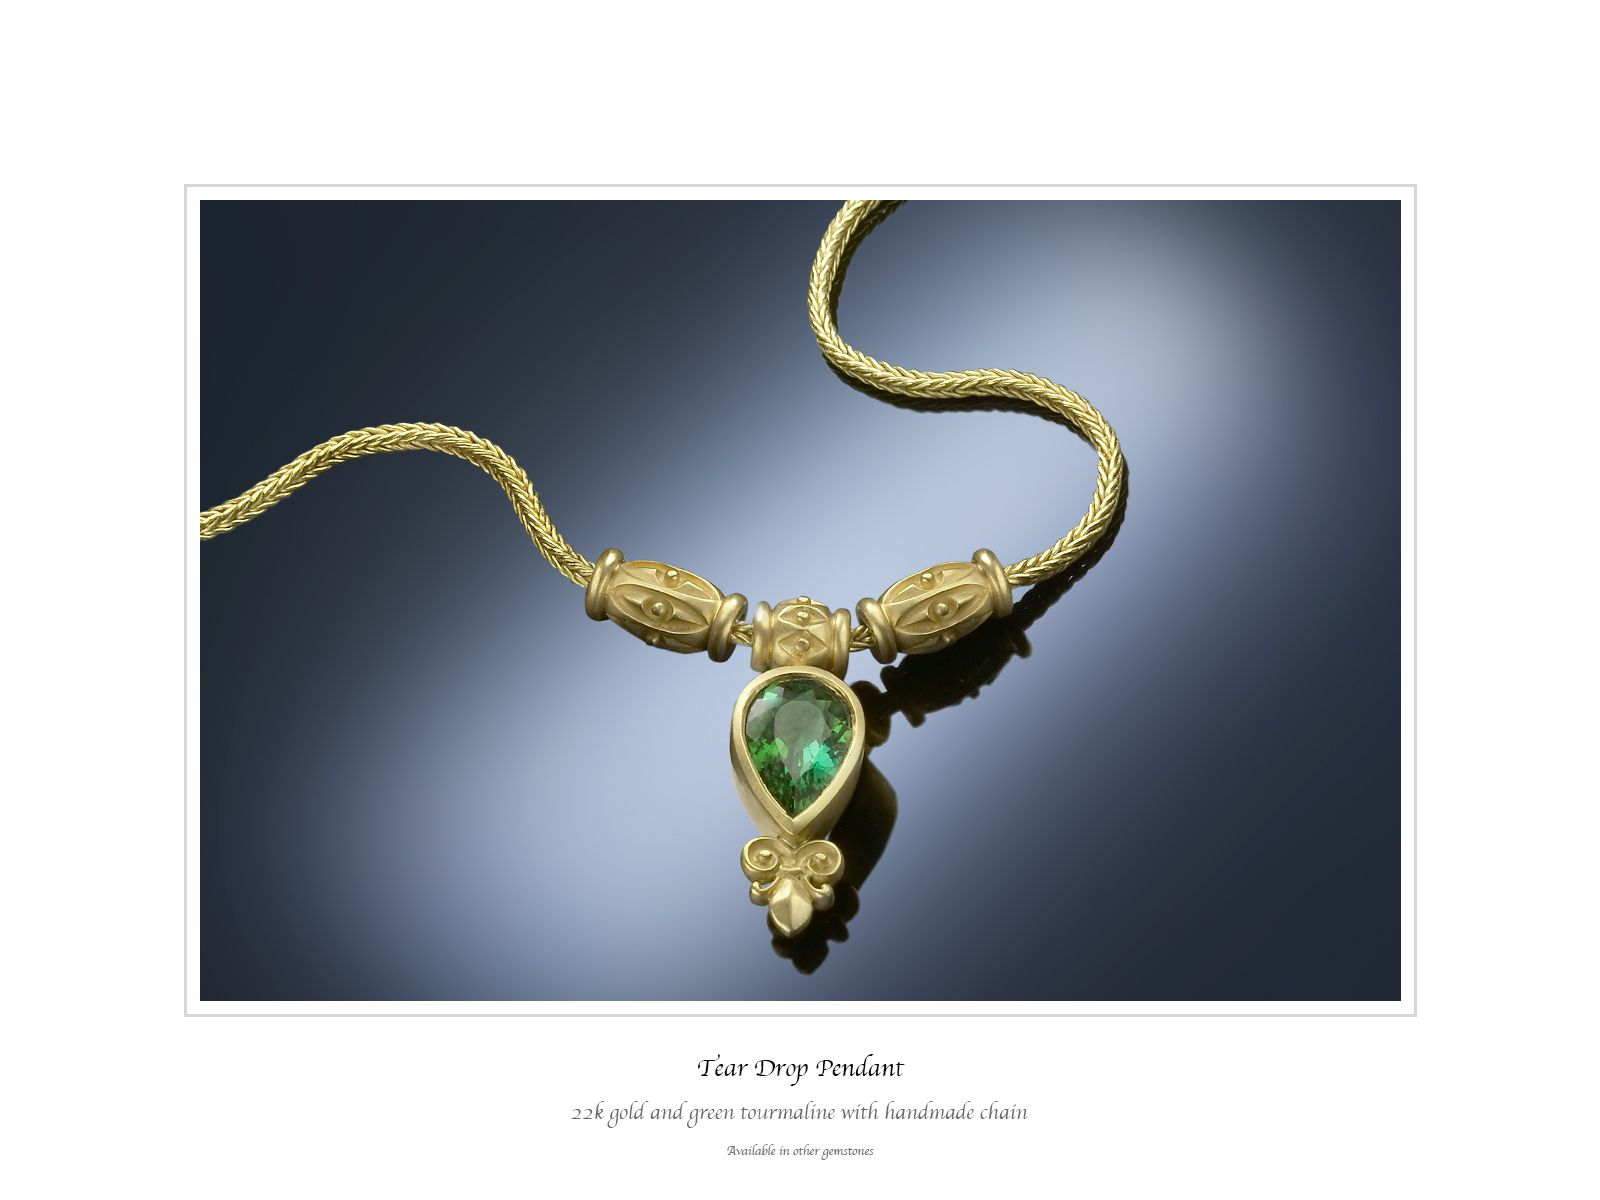 Tear-Drop-Pendant1.jpg